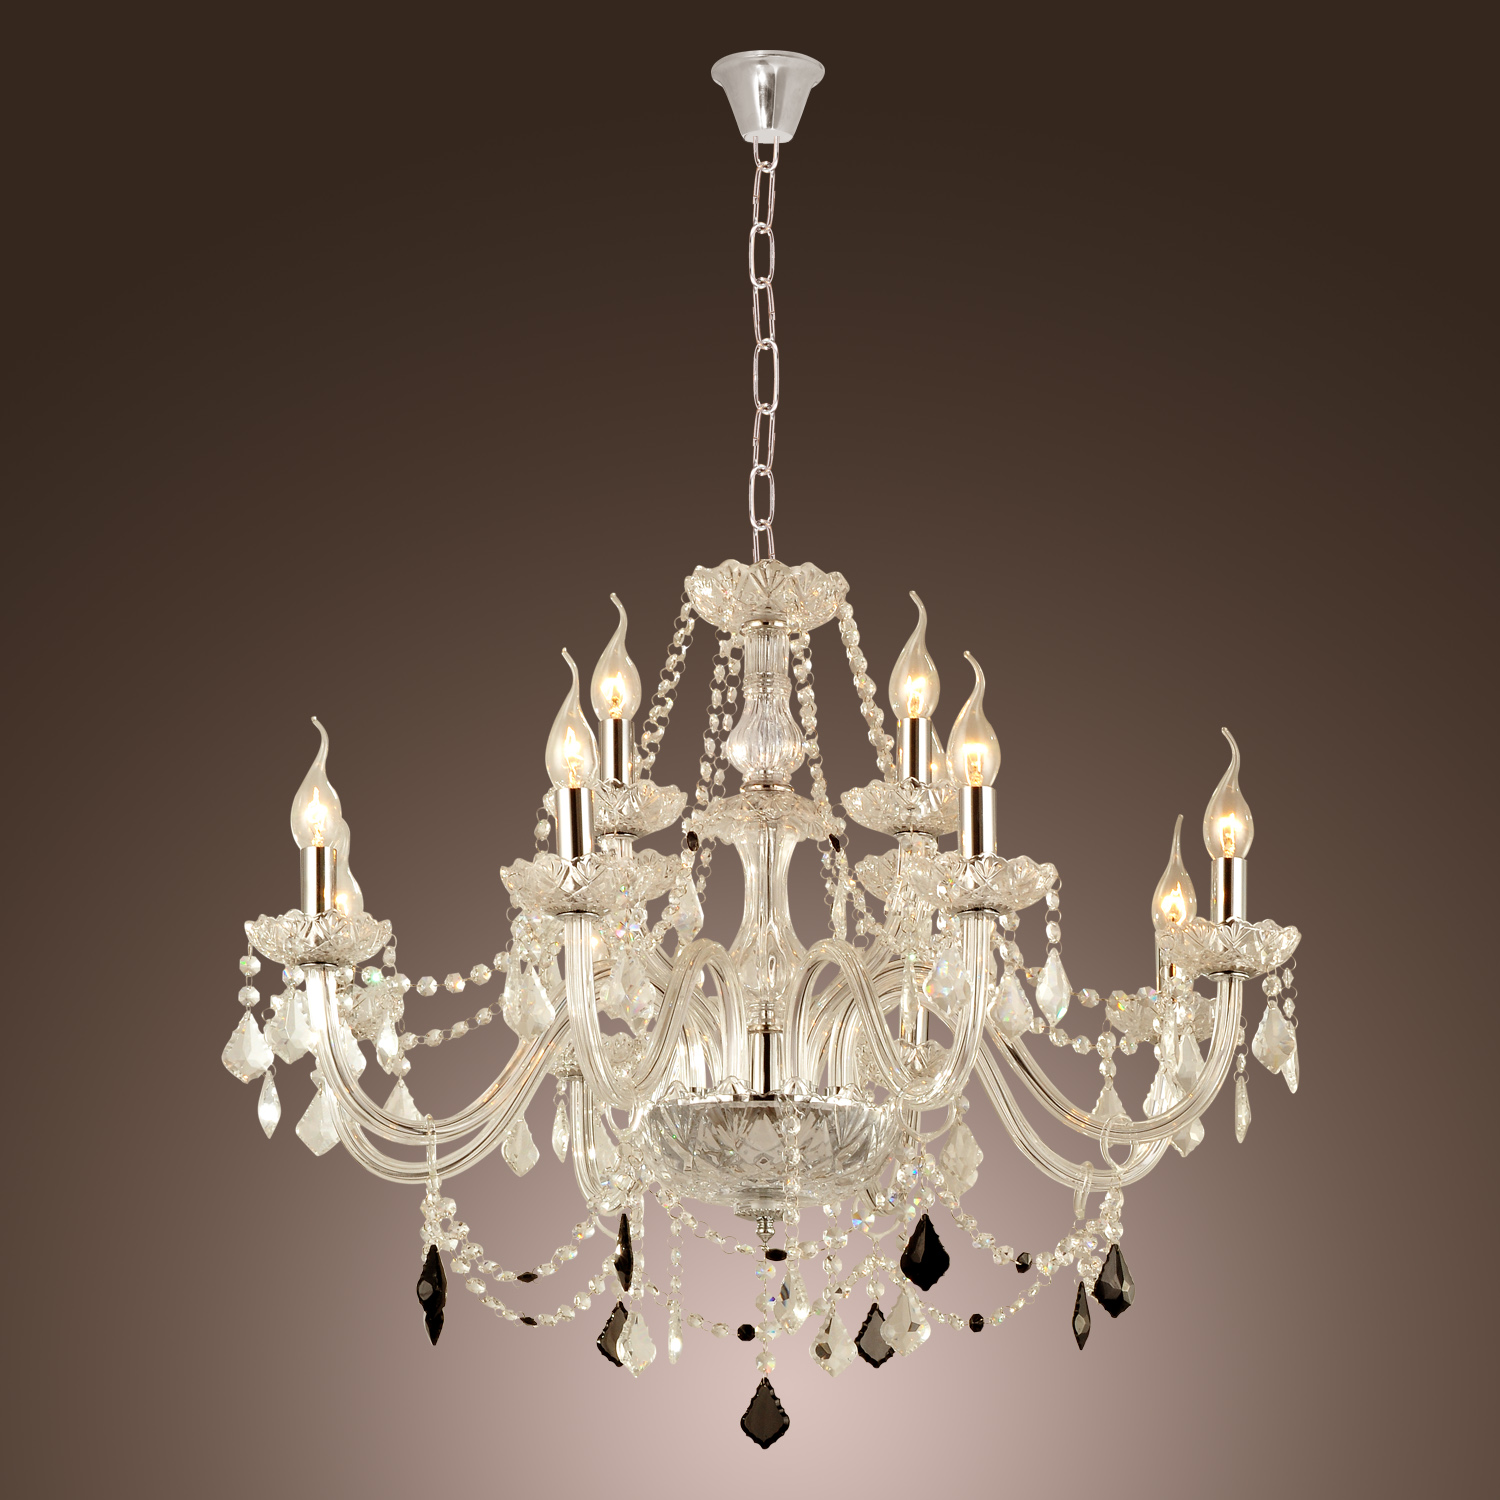 Modern Chandeliers Pendant Light Crystal Rustic Lodge Living Room Dining Room